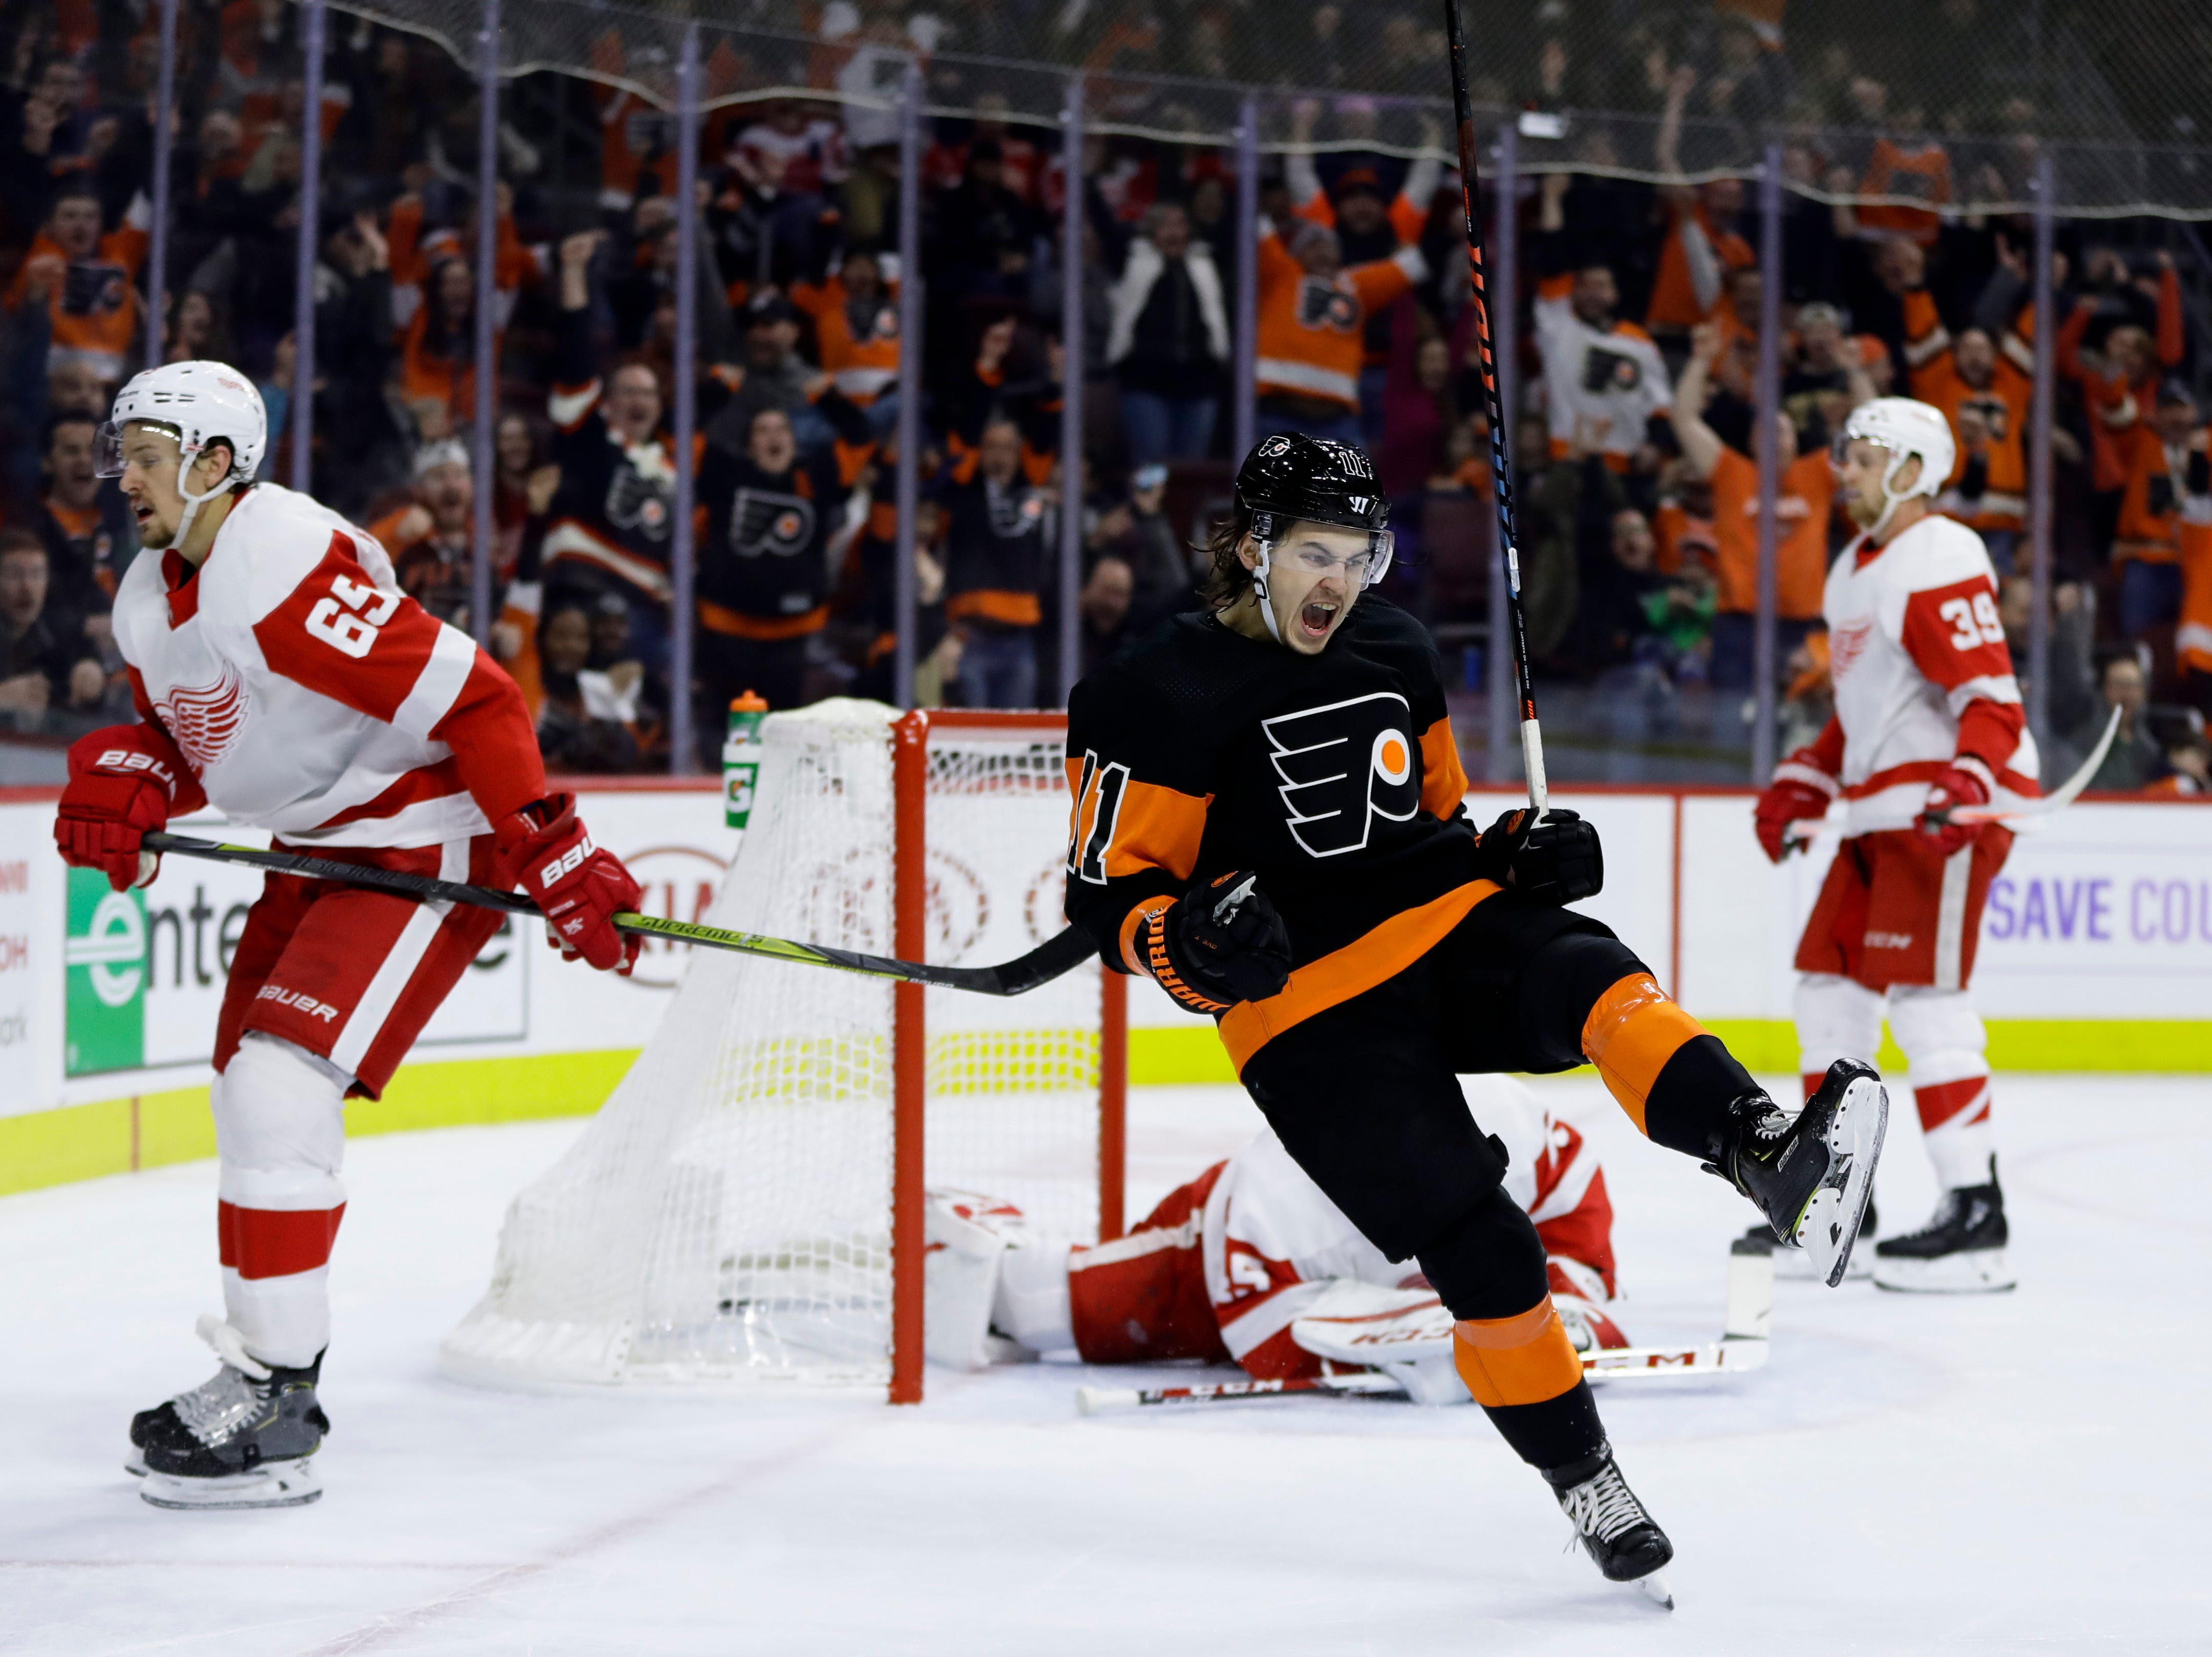 Philadelphia Flyers' Travis Konecny (11) celebrates after scoring the game-winning goal during overtime of an NHL hockey game against the Detroit Red Wings, Saturday, Feb. 16, 2019, in Philadelphia. The Flyers won 6-5. (AP Photo/Matt Slocum)